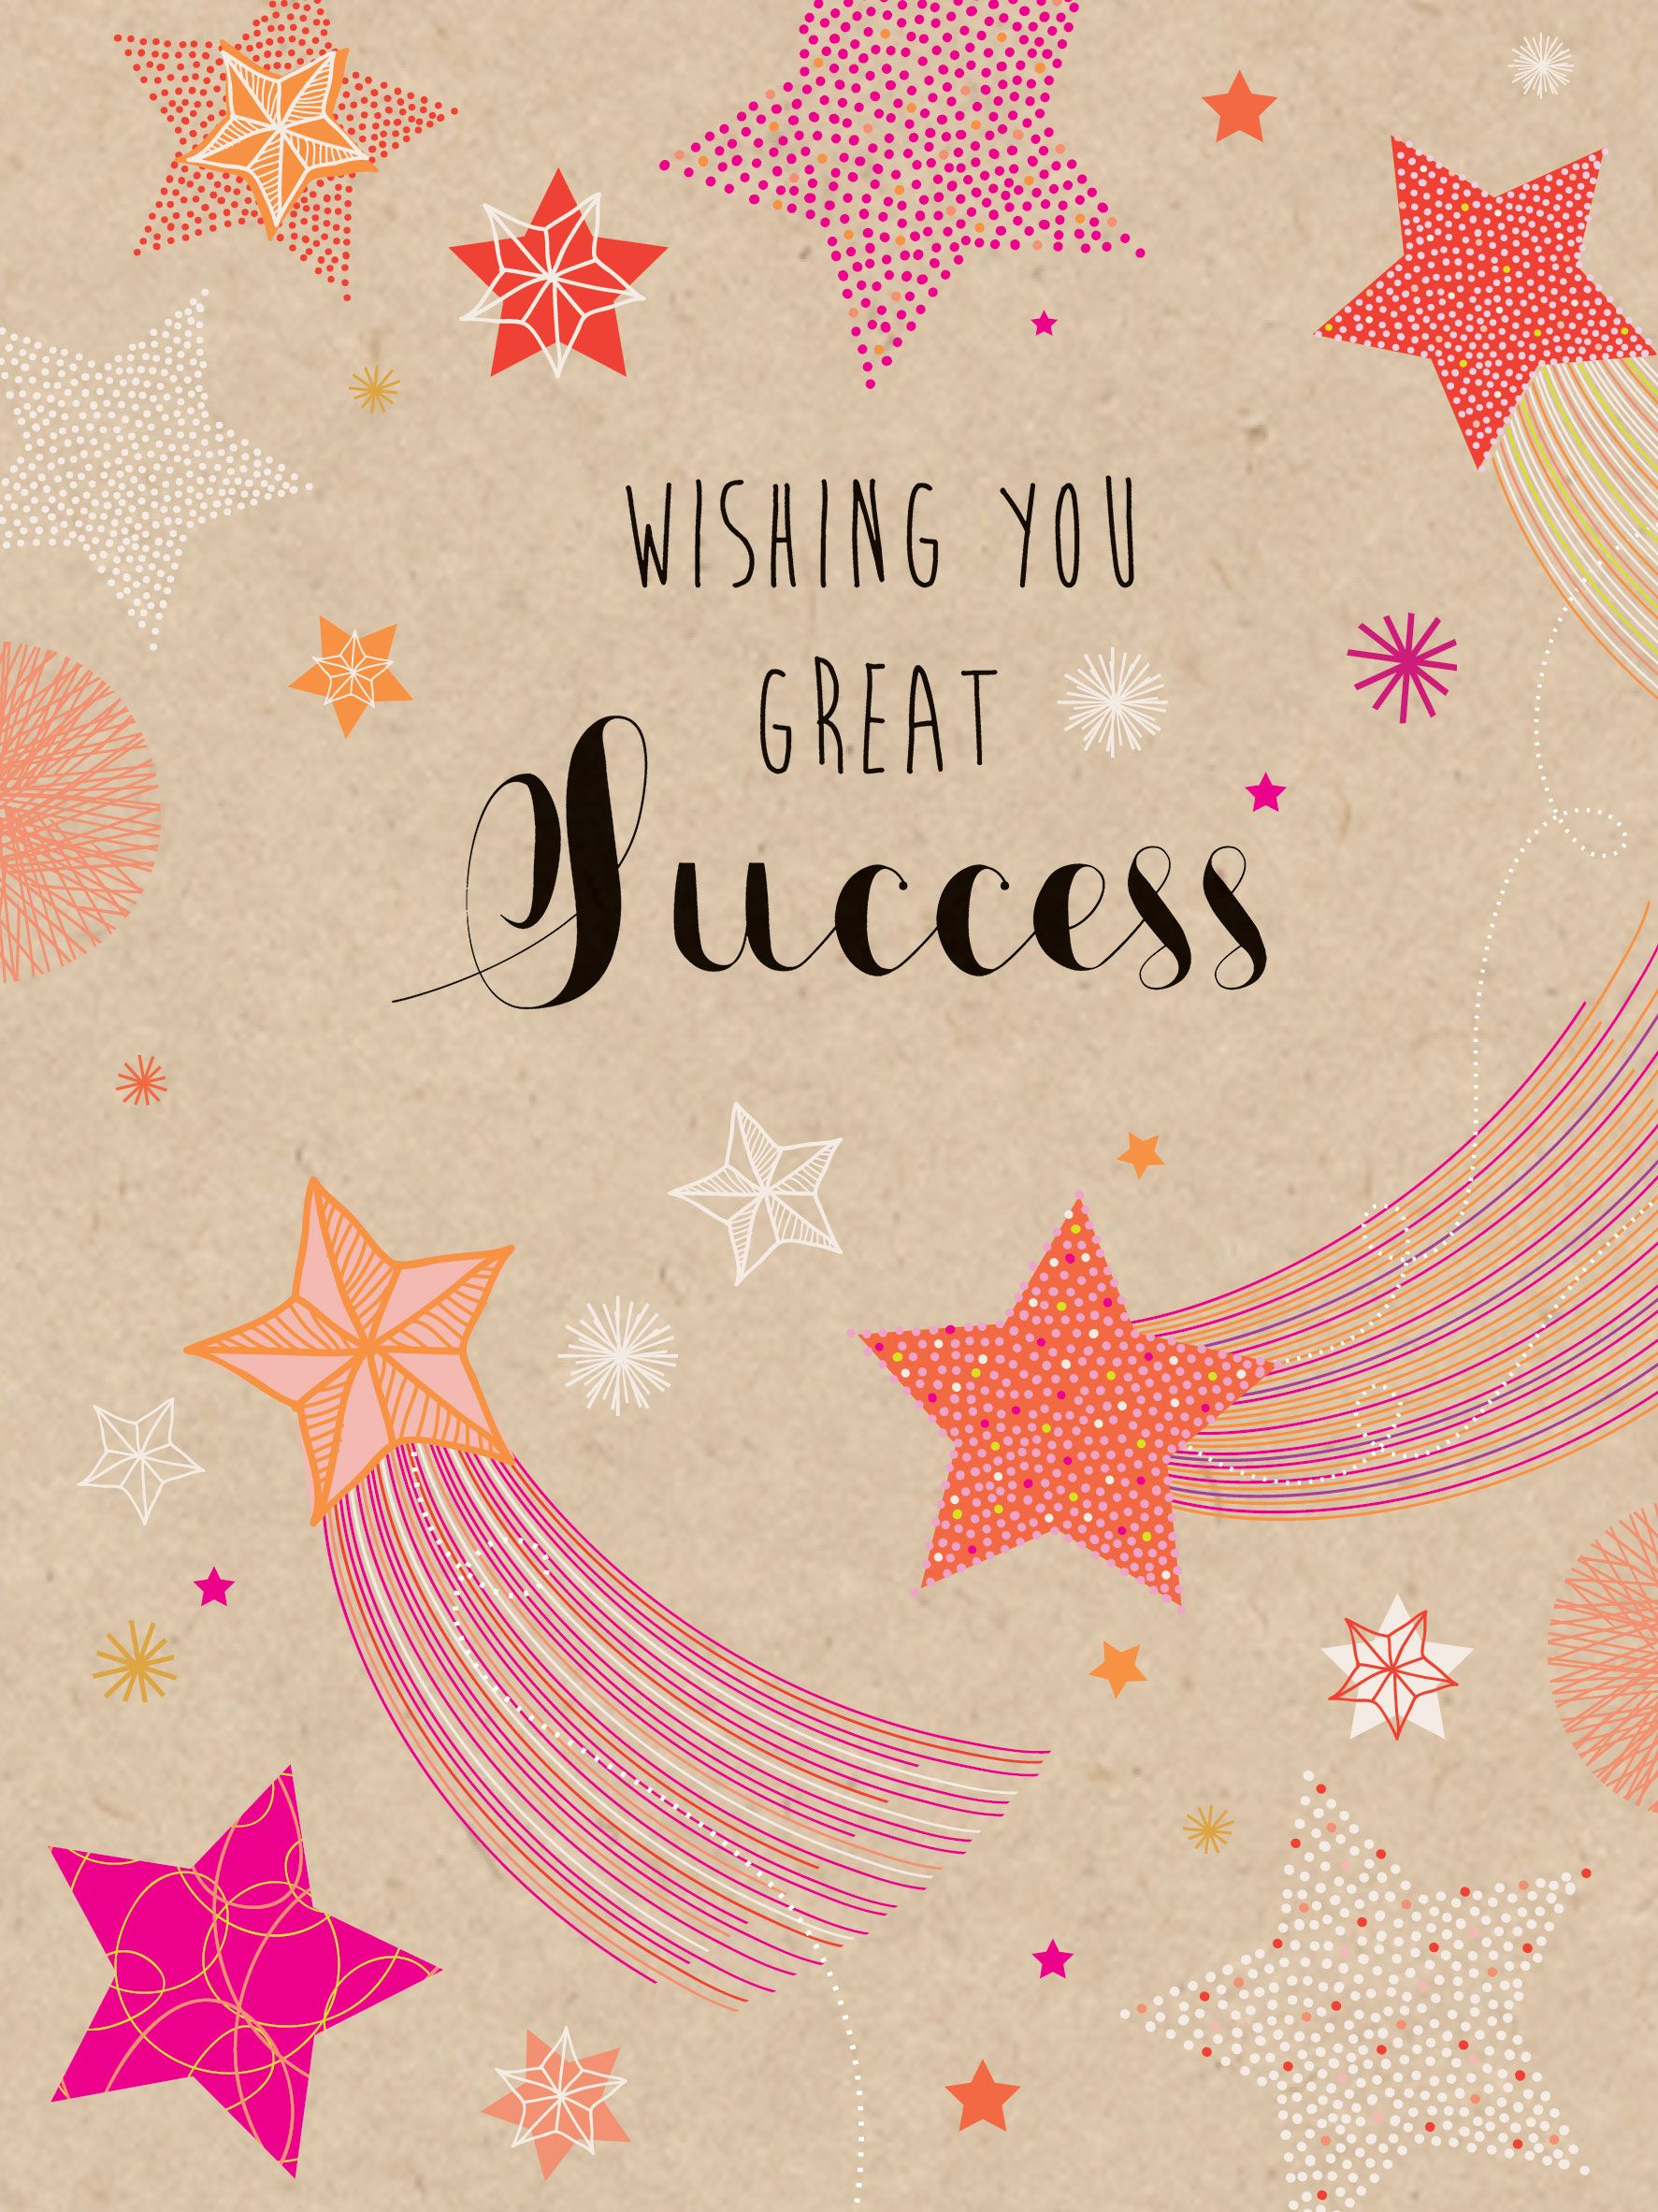 Wishing You Great Success (W461) Luxury Card By Hillberry Card